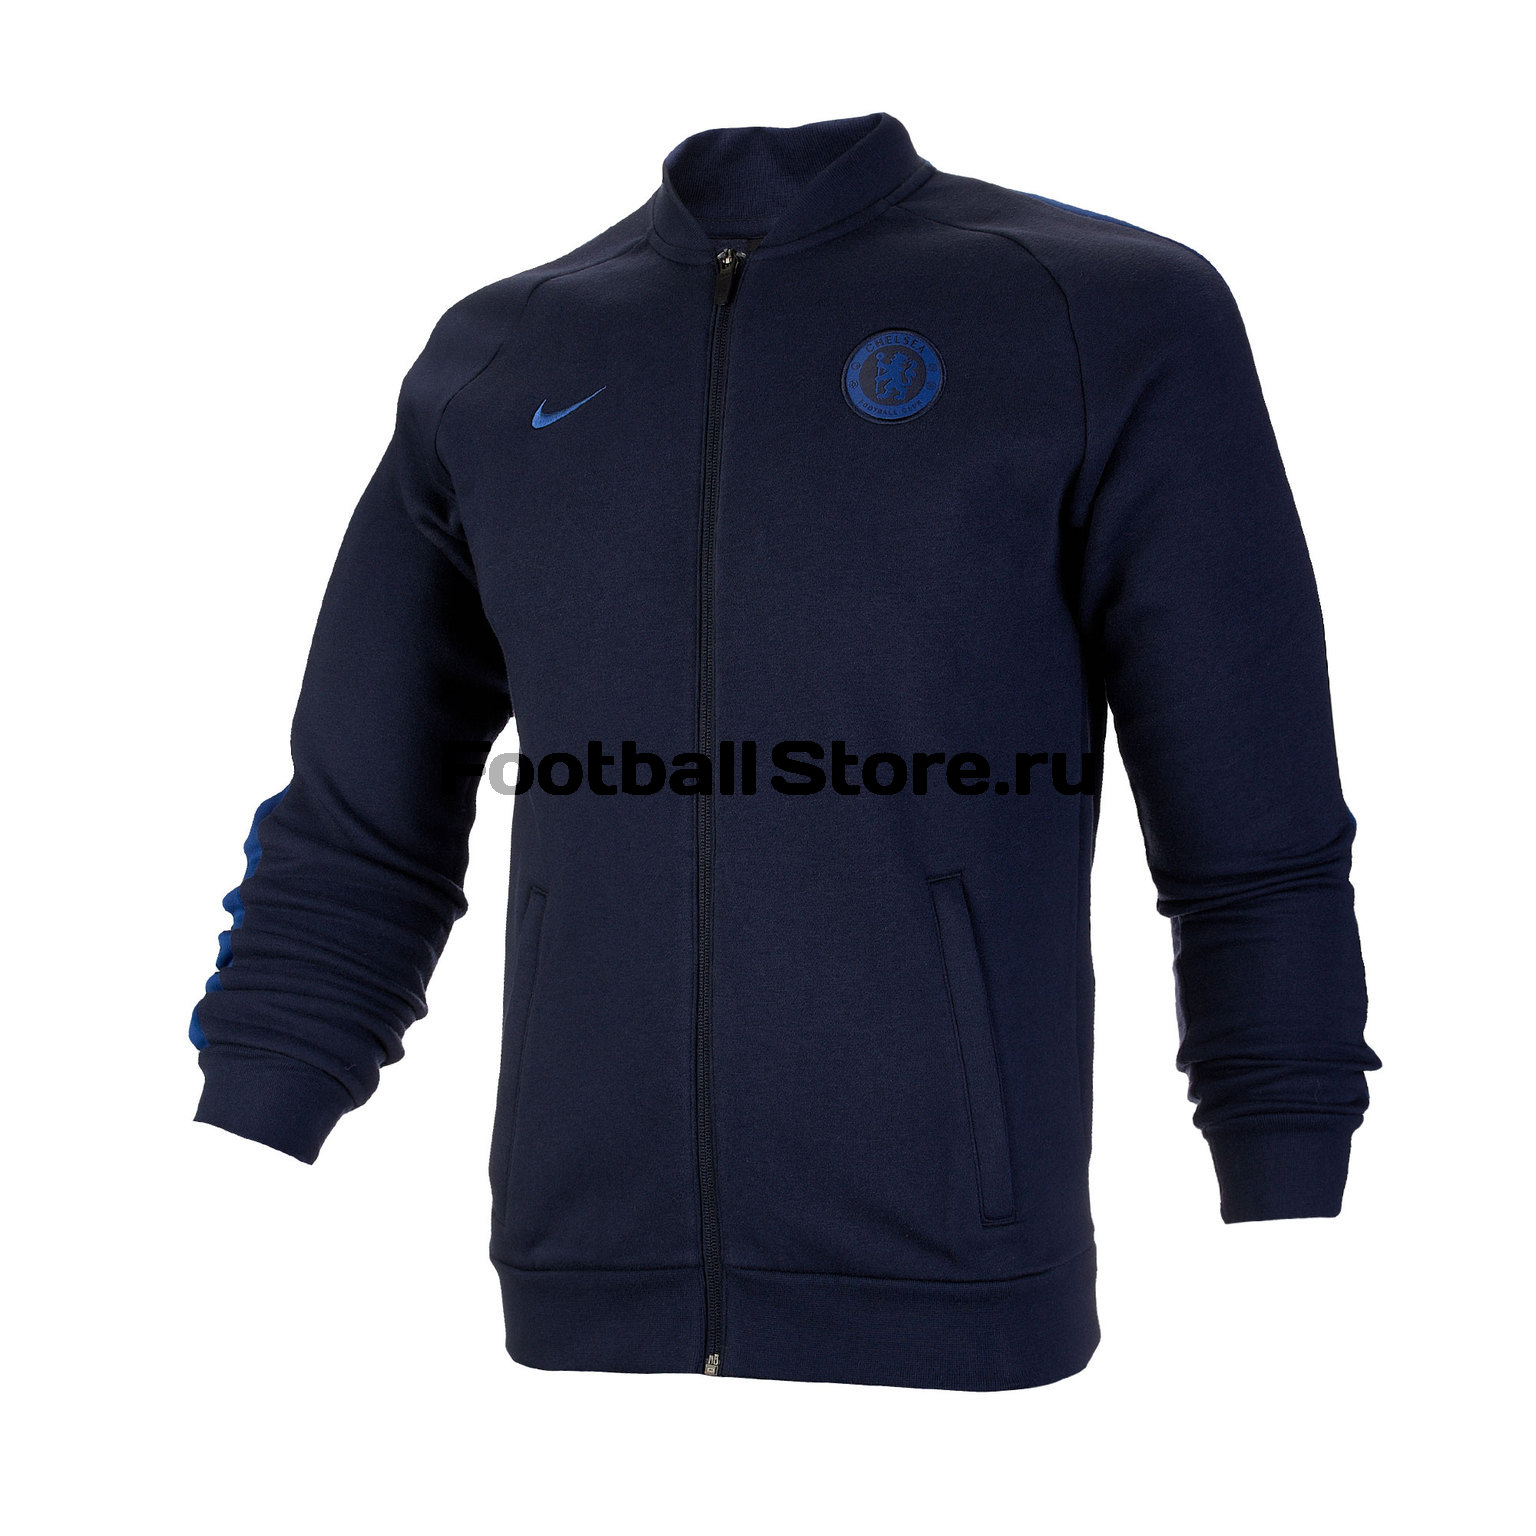 Куртка Nike Chelsea Fleece Jacket AT4433-451 куртка мужская nike men s dry training jacket 800199 021